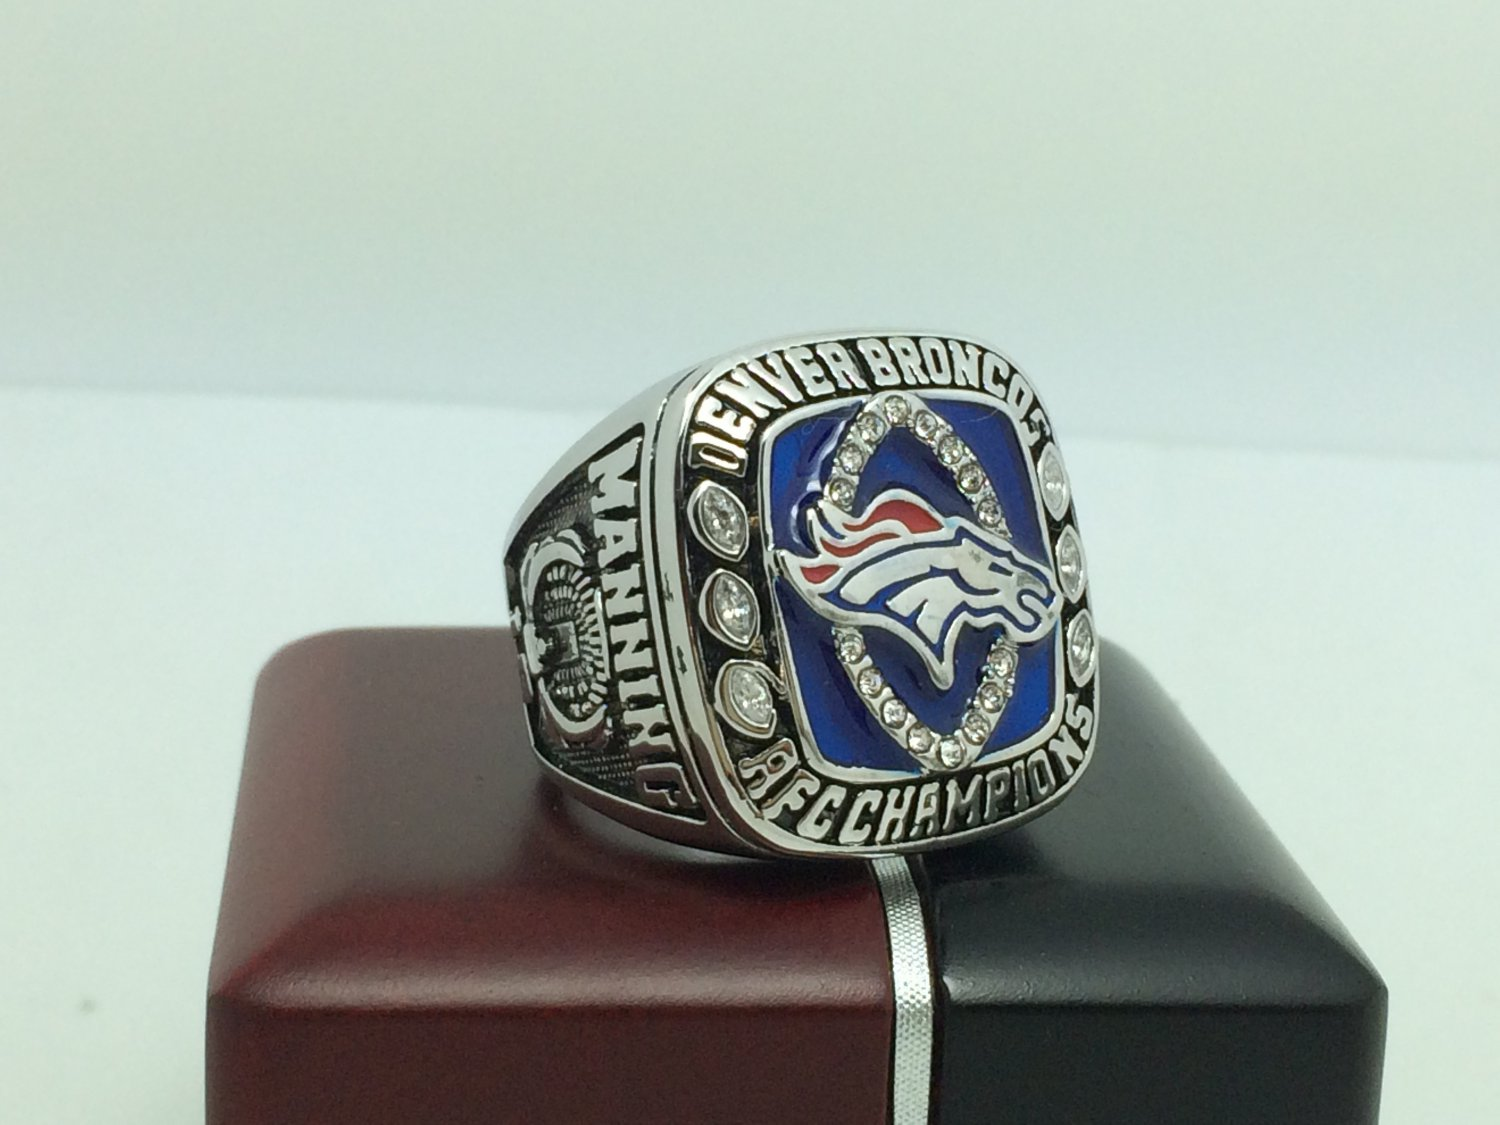 2013 Denver Broncos AFC super bowl Championship Ring 9-13 Size With wooden box